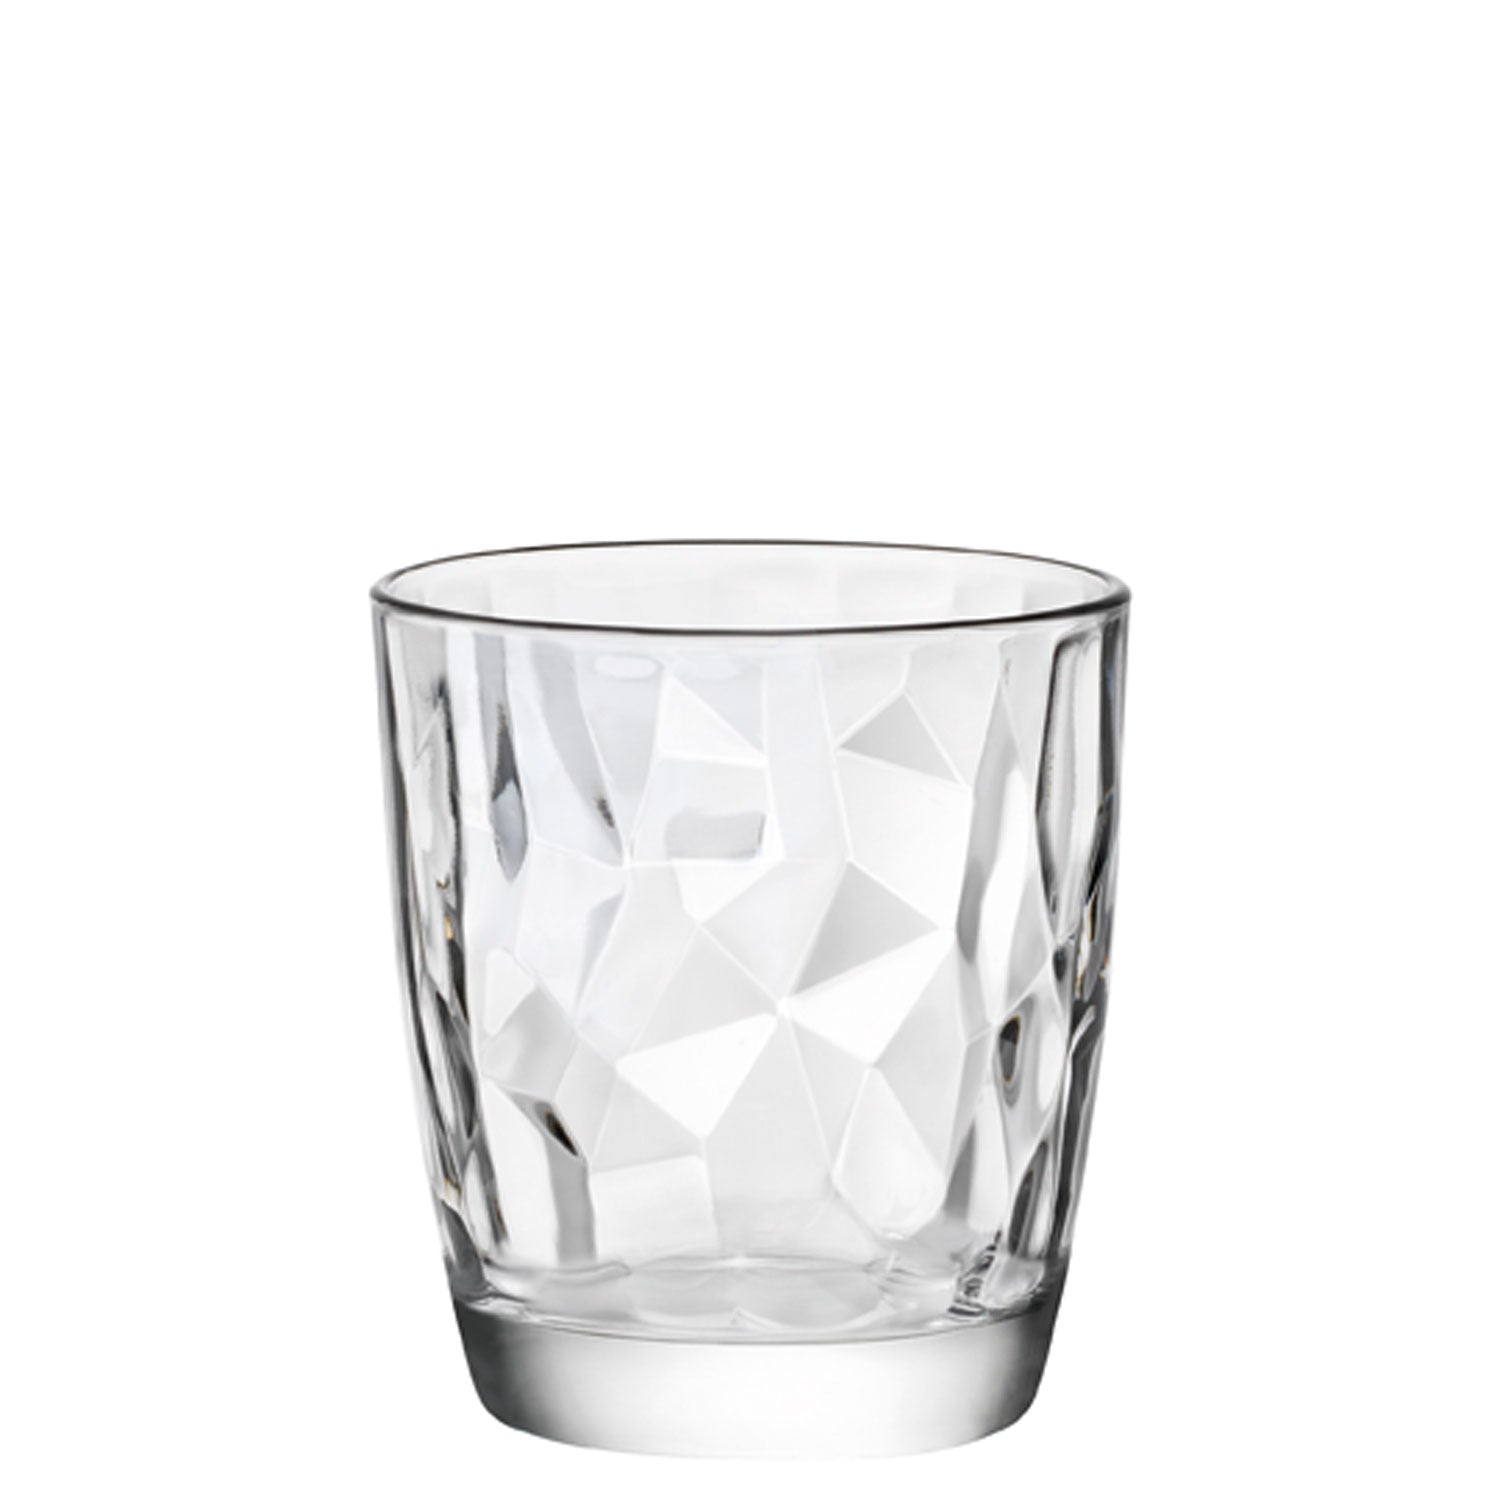 Diamond Trinkglas Transparent 30,5 cl -  Ø 8,4 x 9,3 cm (6 Stück)